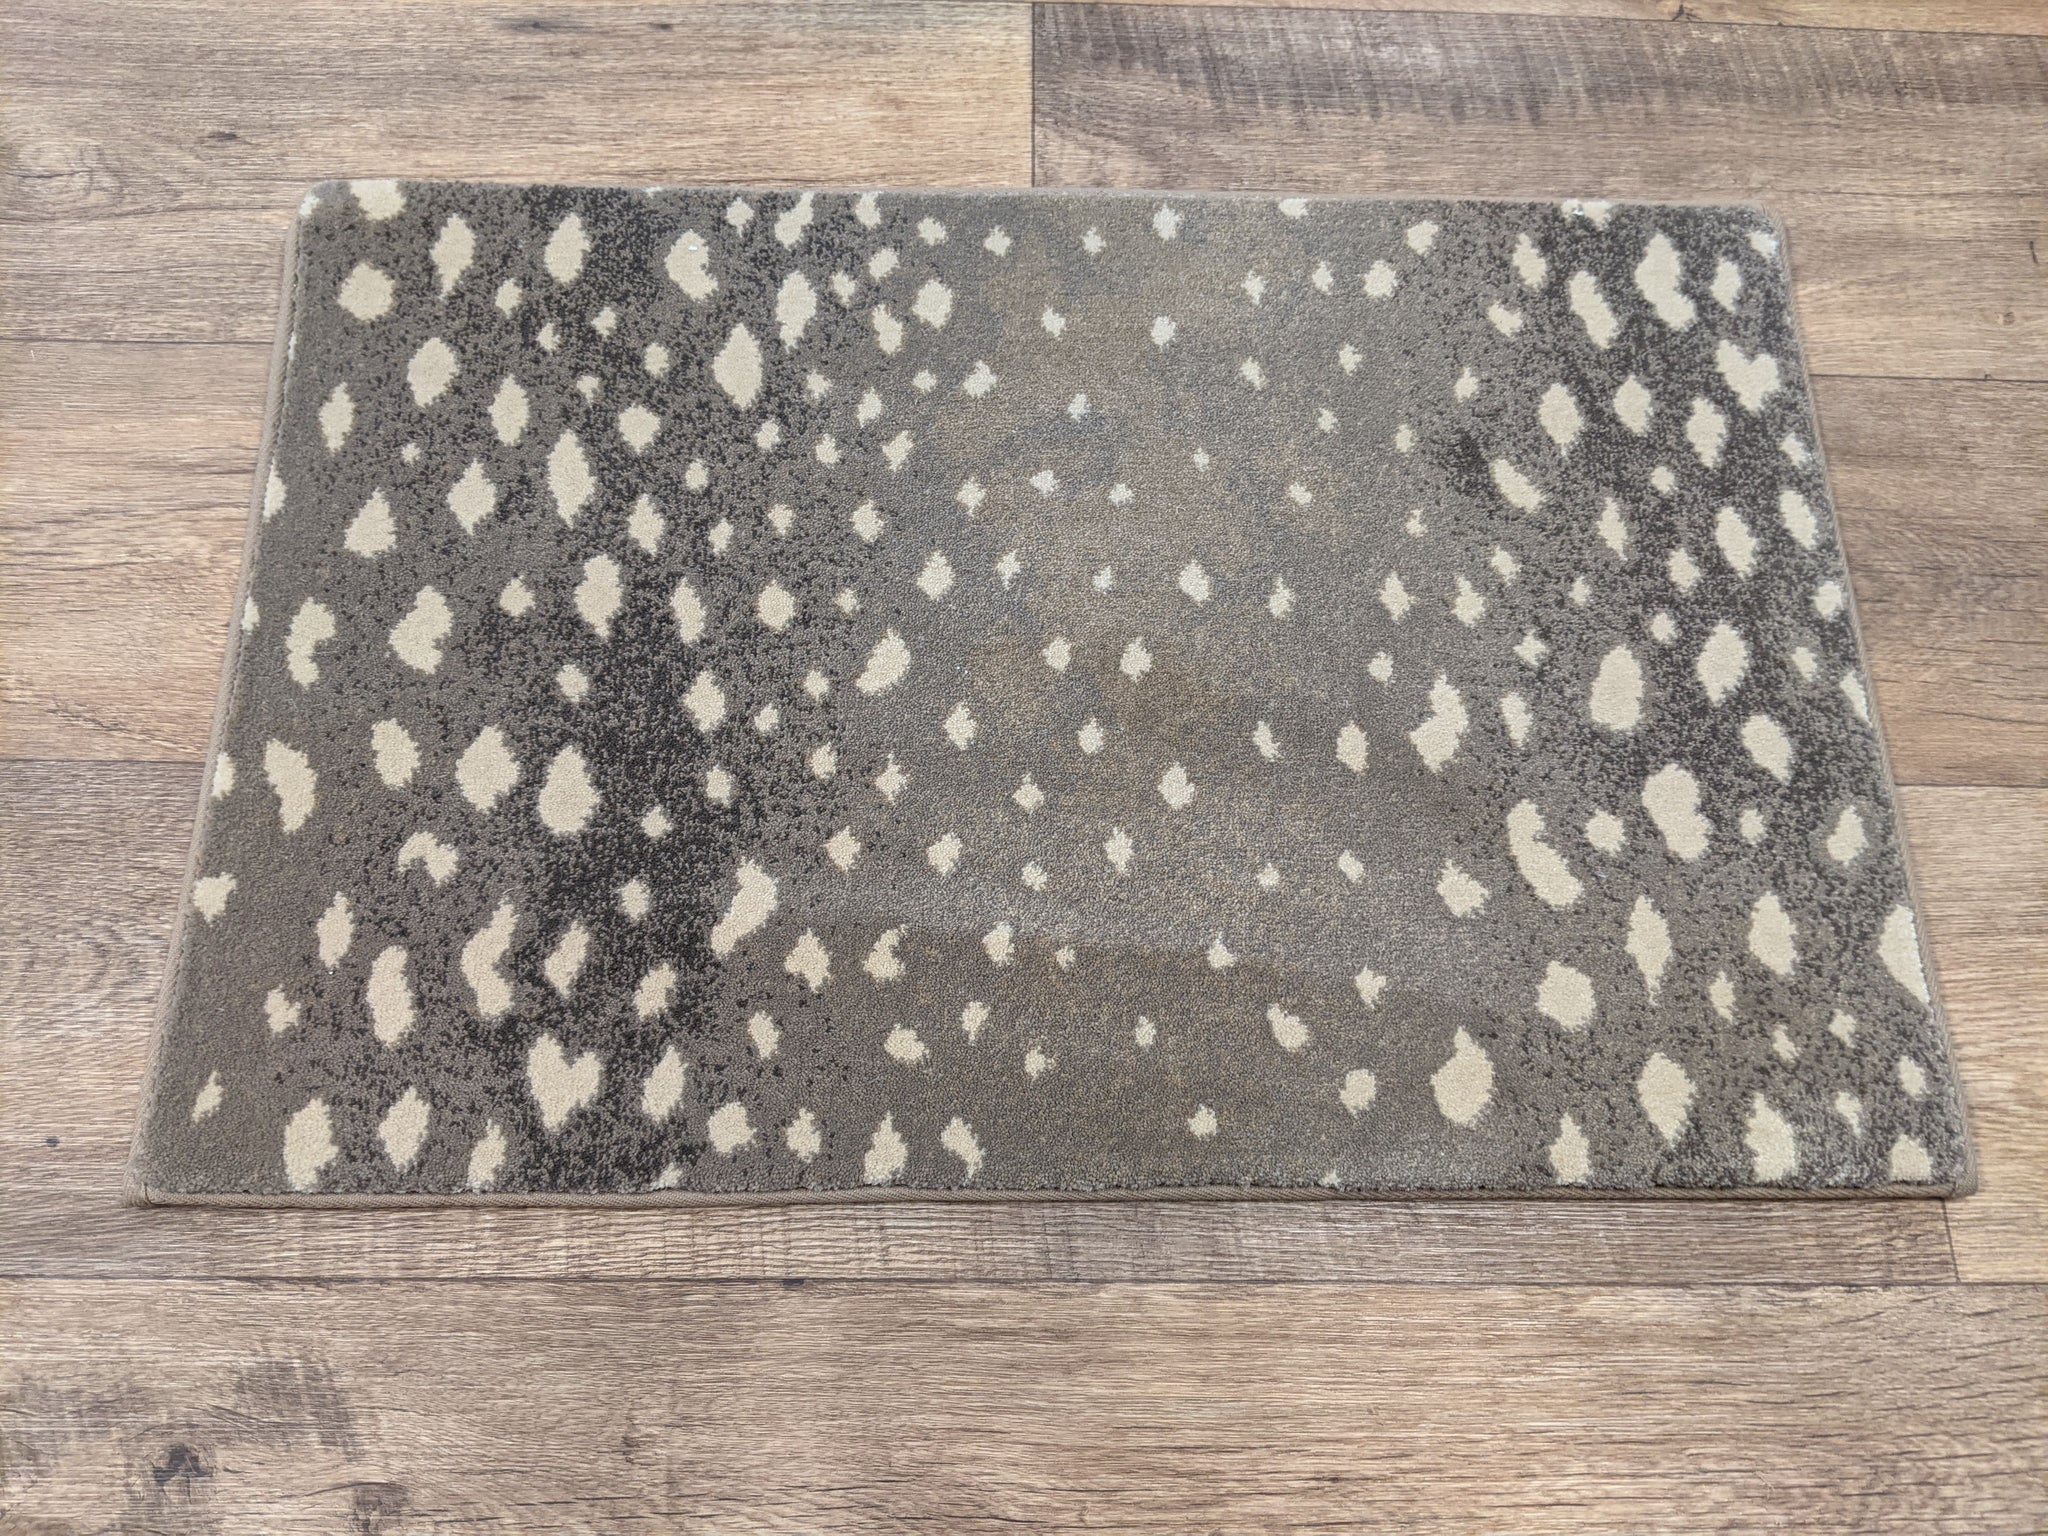 Prestige Mills Stair Runners Deerfield 72 Mushroom Animal Print By Prestige In Assorted Sizes